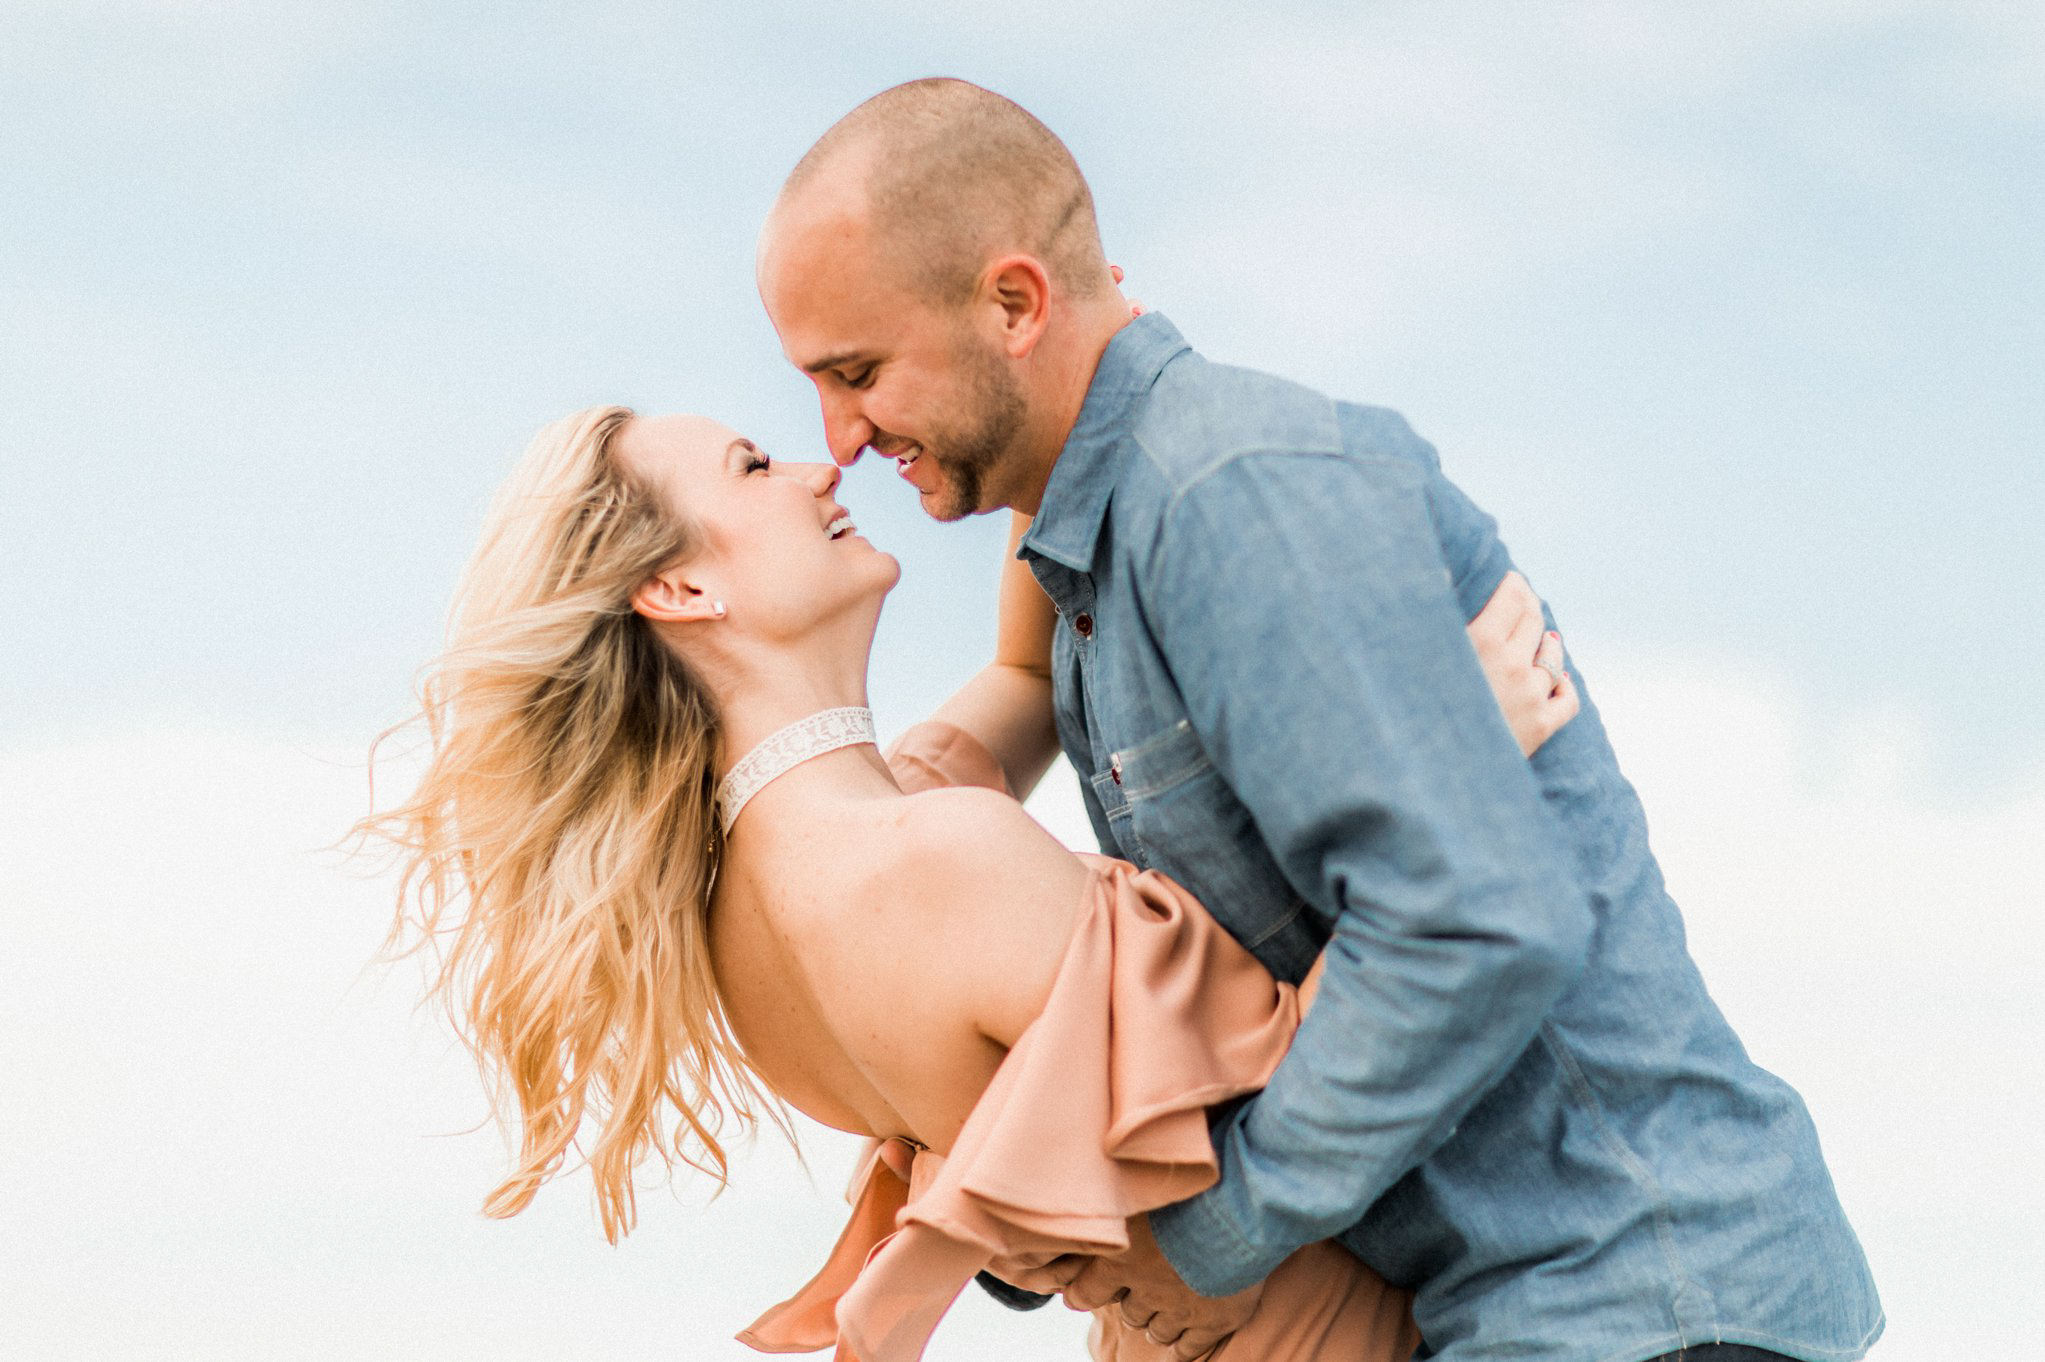 Tommy + Courtney's Cocoa Beach engagement ||Boho surf style engagement outfit inspiration - she wore an apricot maxi dress with a lace choker necklace; he wore a chambray buttondown, dark jeans and brown leather shoes. || Engagement photography by Shaina DeCiryan Lifestyle Wedding Photography || Book your 2017/2018 Wedding at: ShainaDeCiryan.com @shainadeciryan